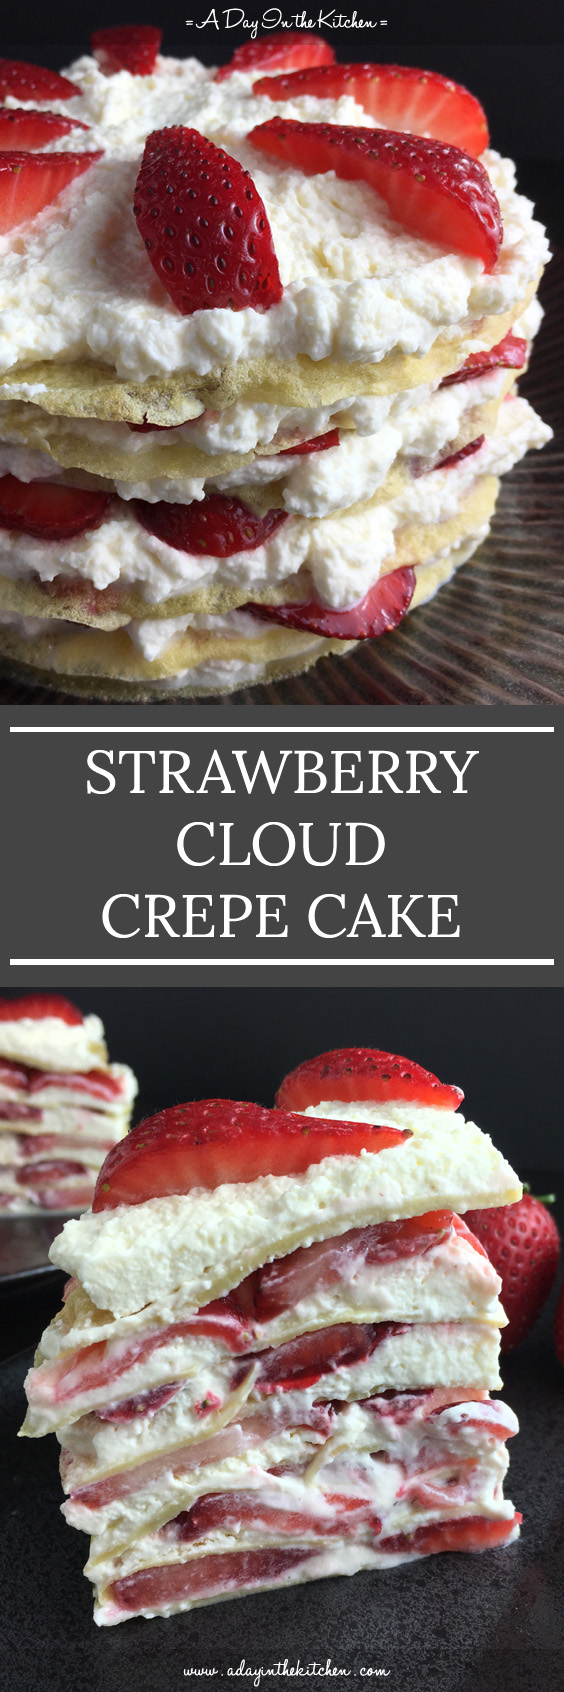 A deliciously light and refreshing dessert, Strawberry Cloud Crepe Cake is gluten-free with no refined sugar. A fabulous way to enjoy ripe summer berries.